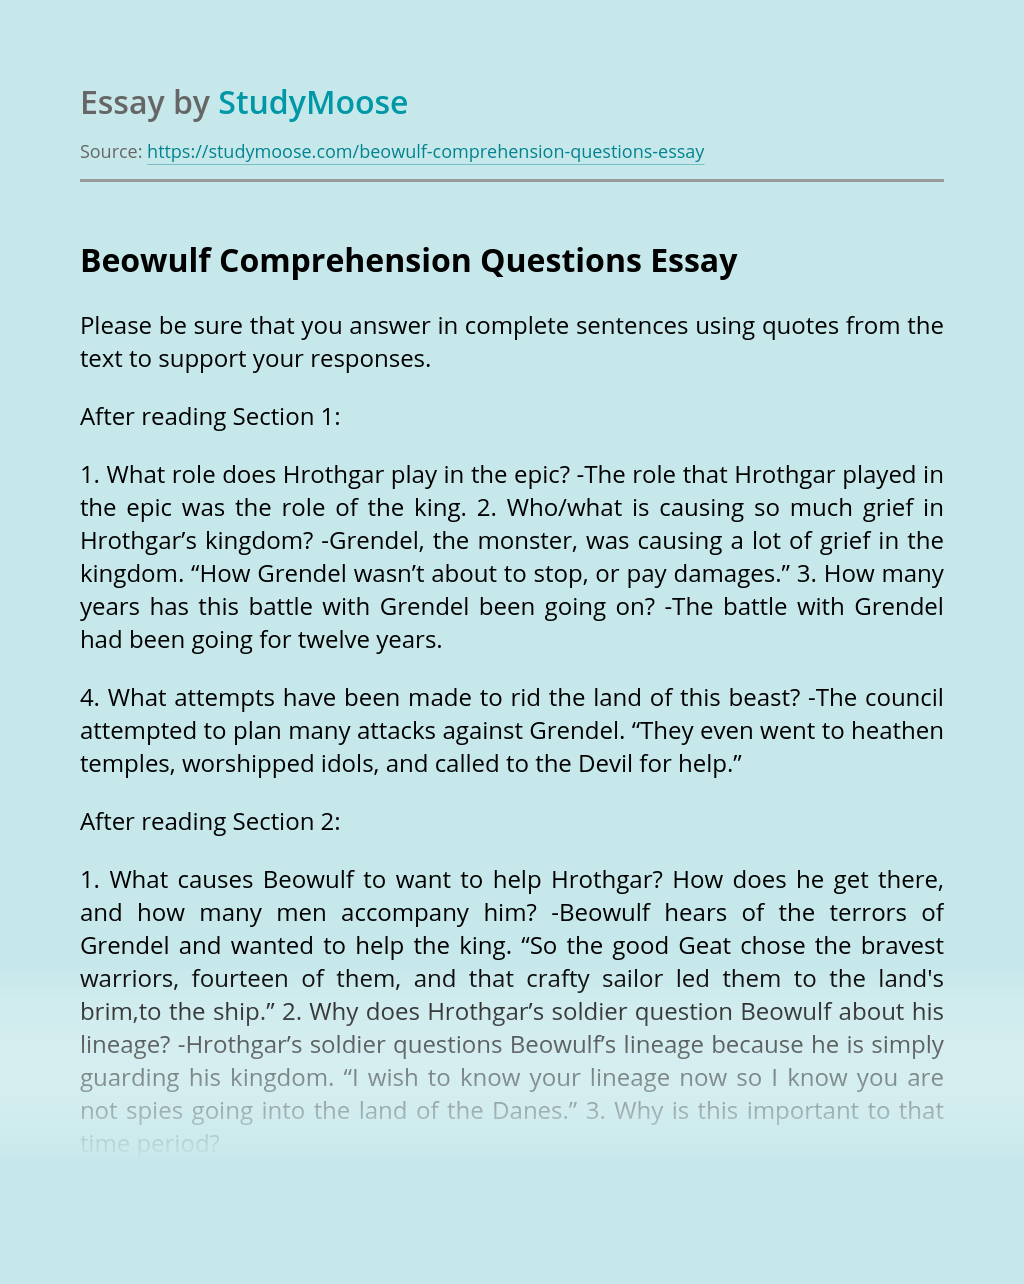 Beowulf Comprehension Questions